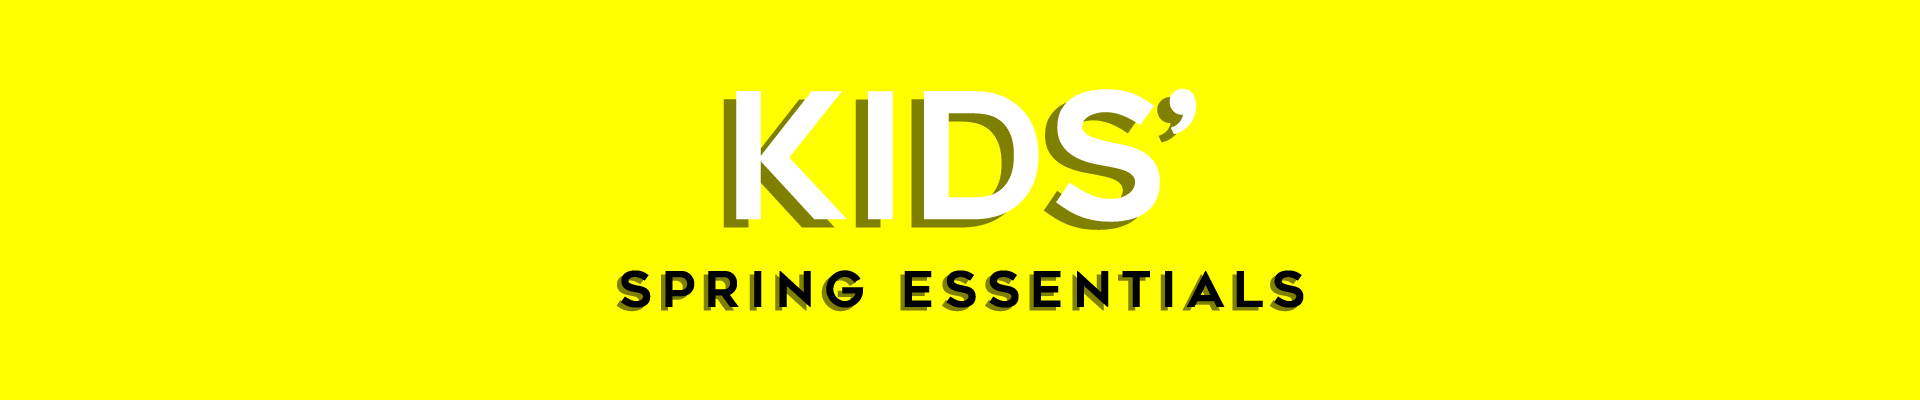 Kids' Spring Essentials